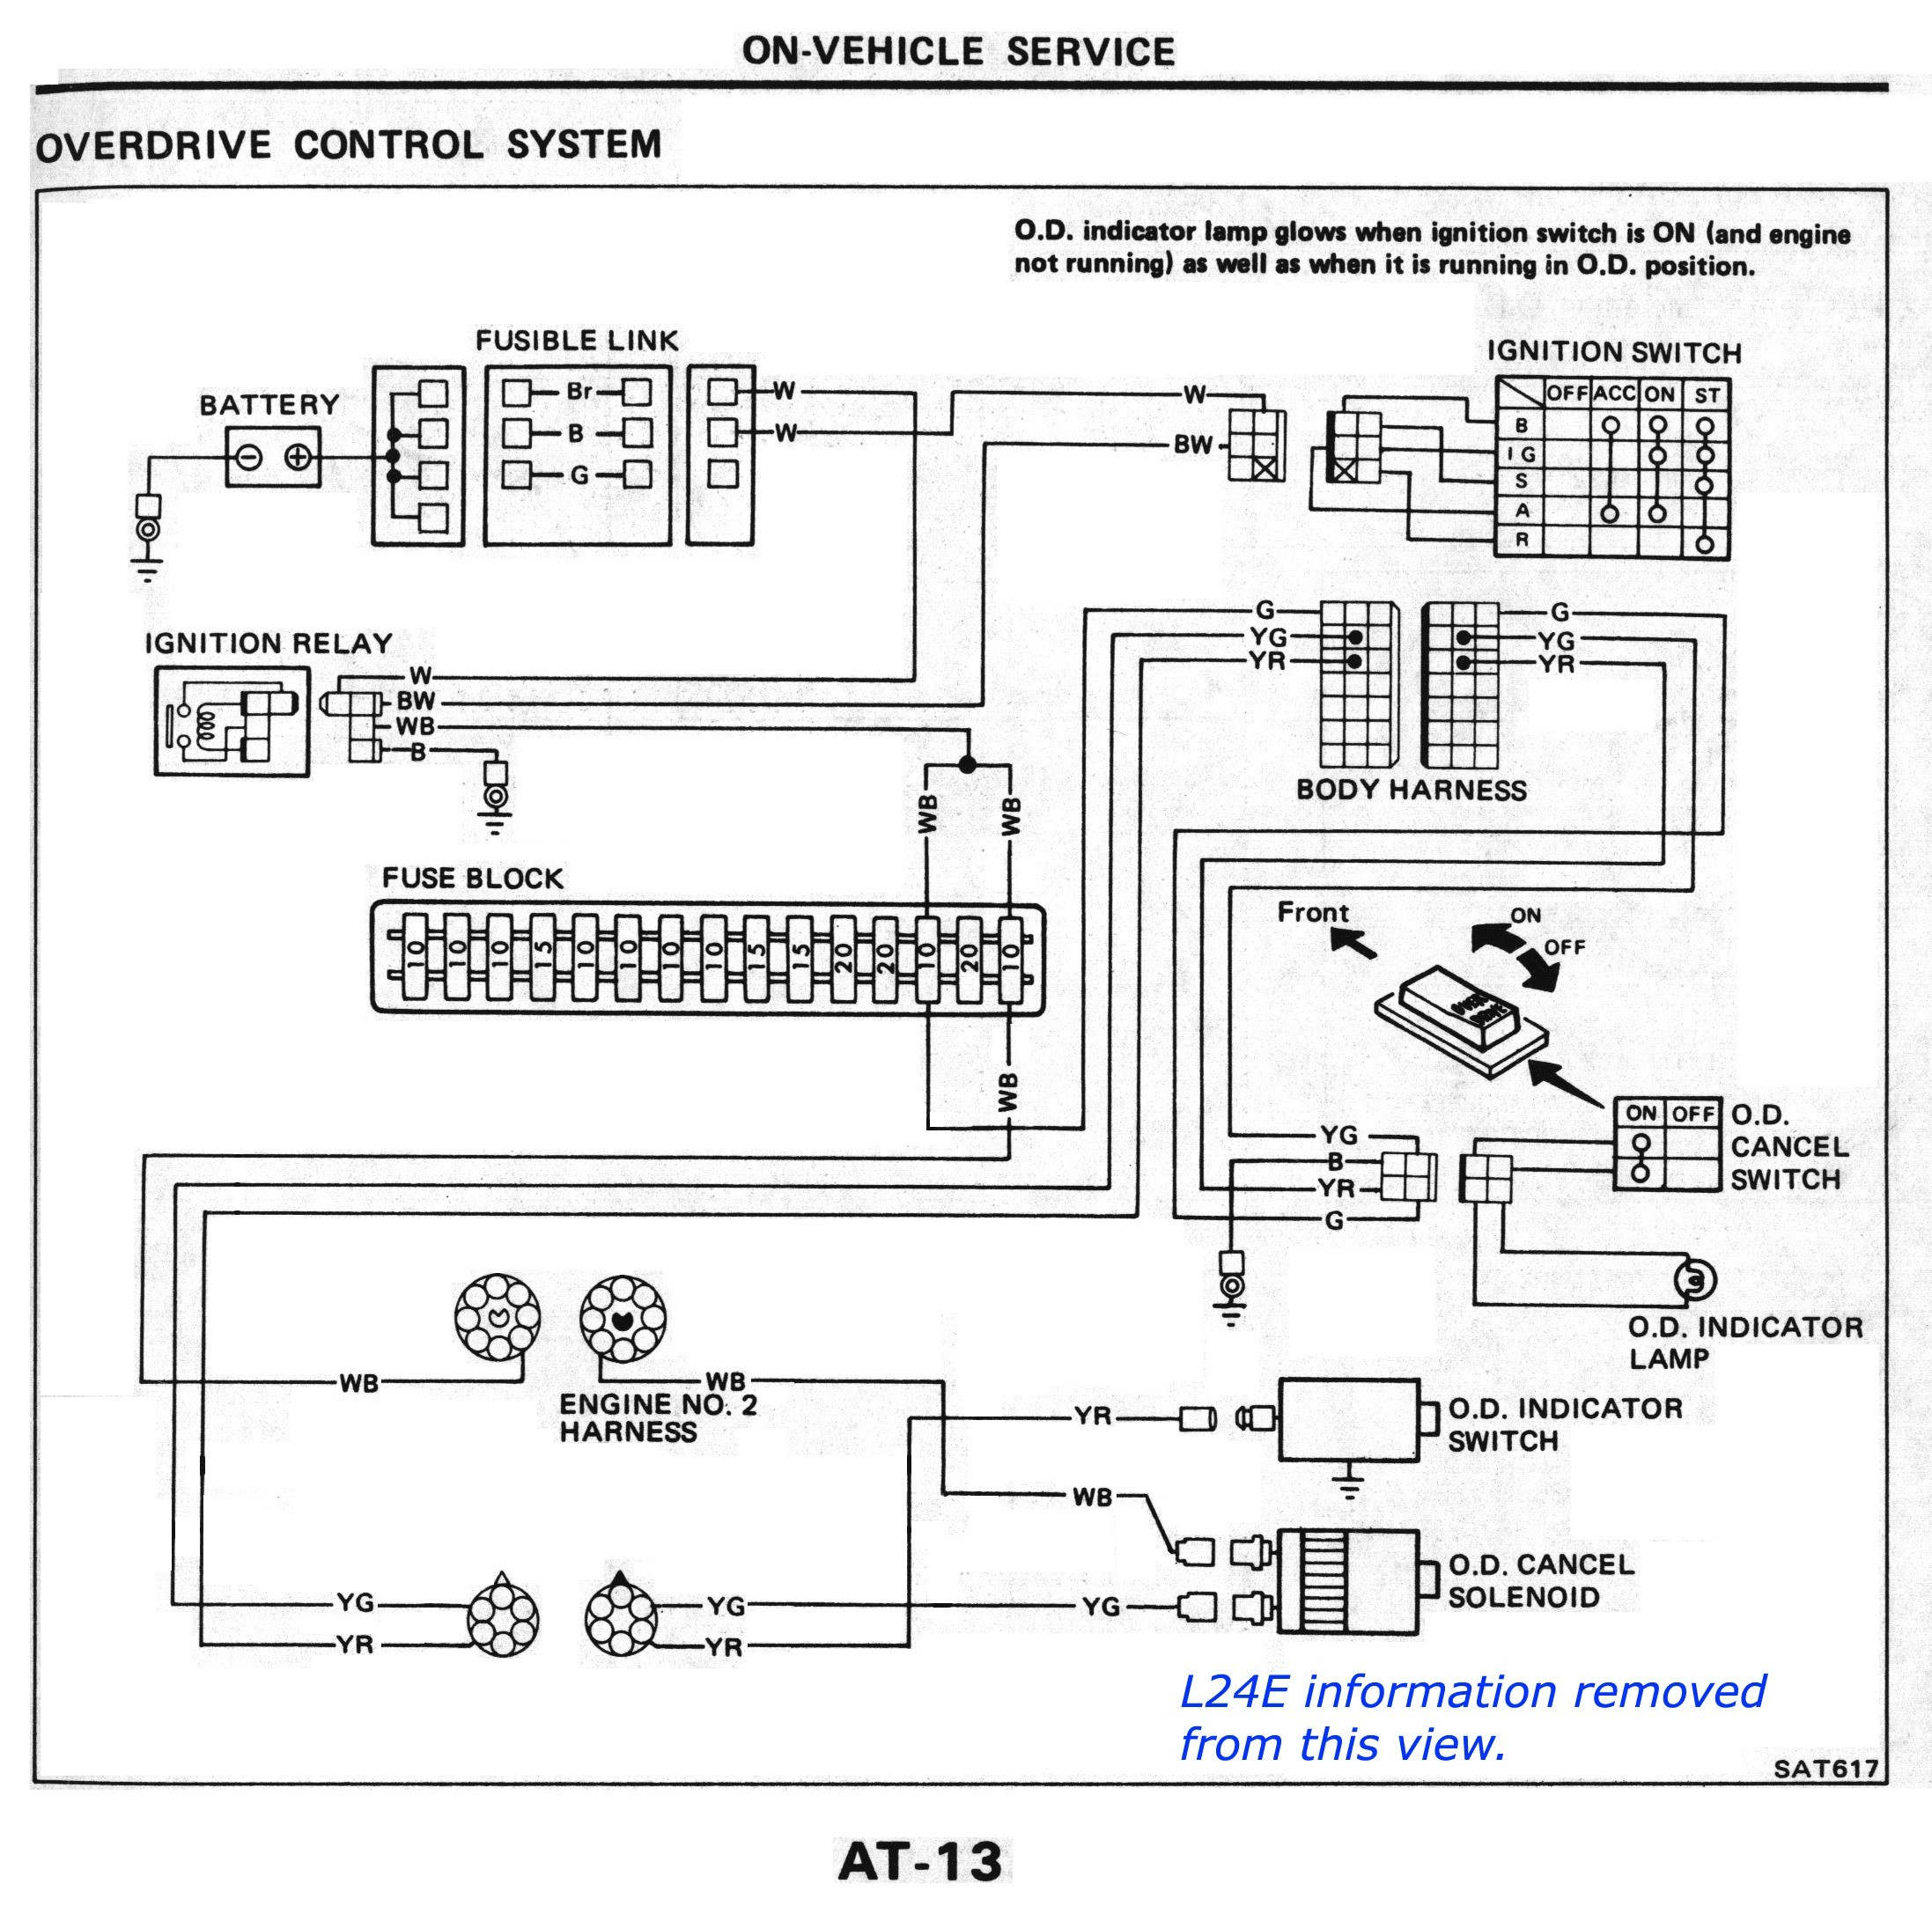 Car Reverse Light Wiring Diagram Harley Davidson 1960 Chevy Nissandiesel Forums View Topic L4n71b Od At 1983 84 Of